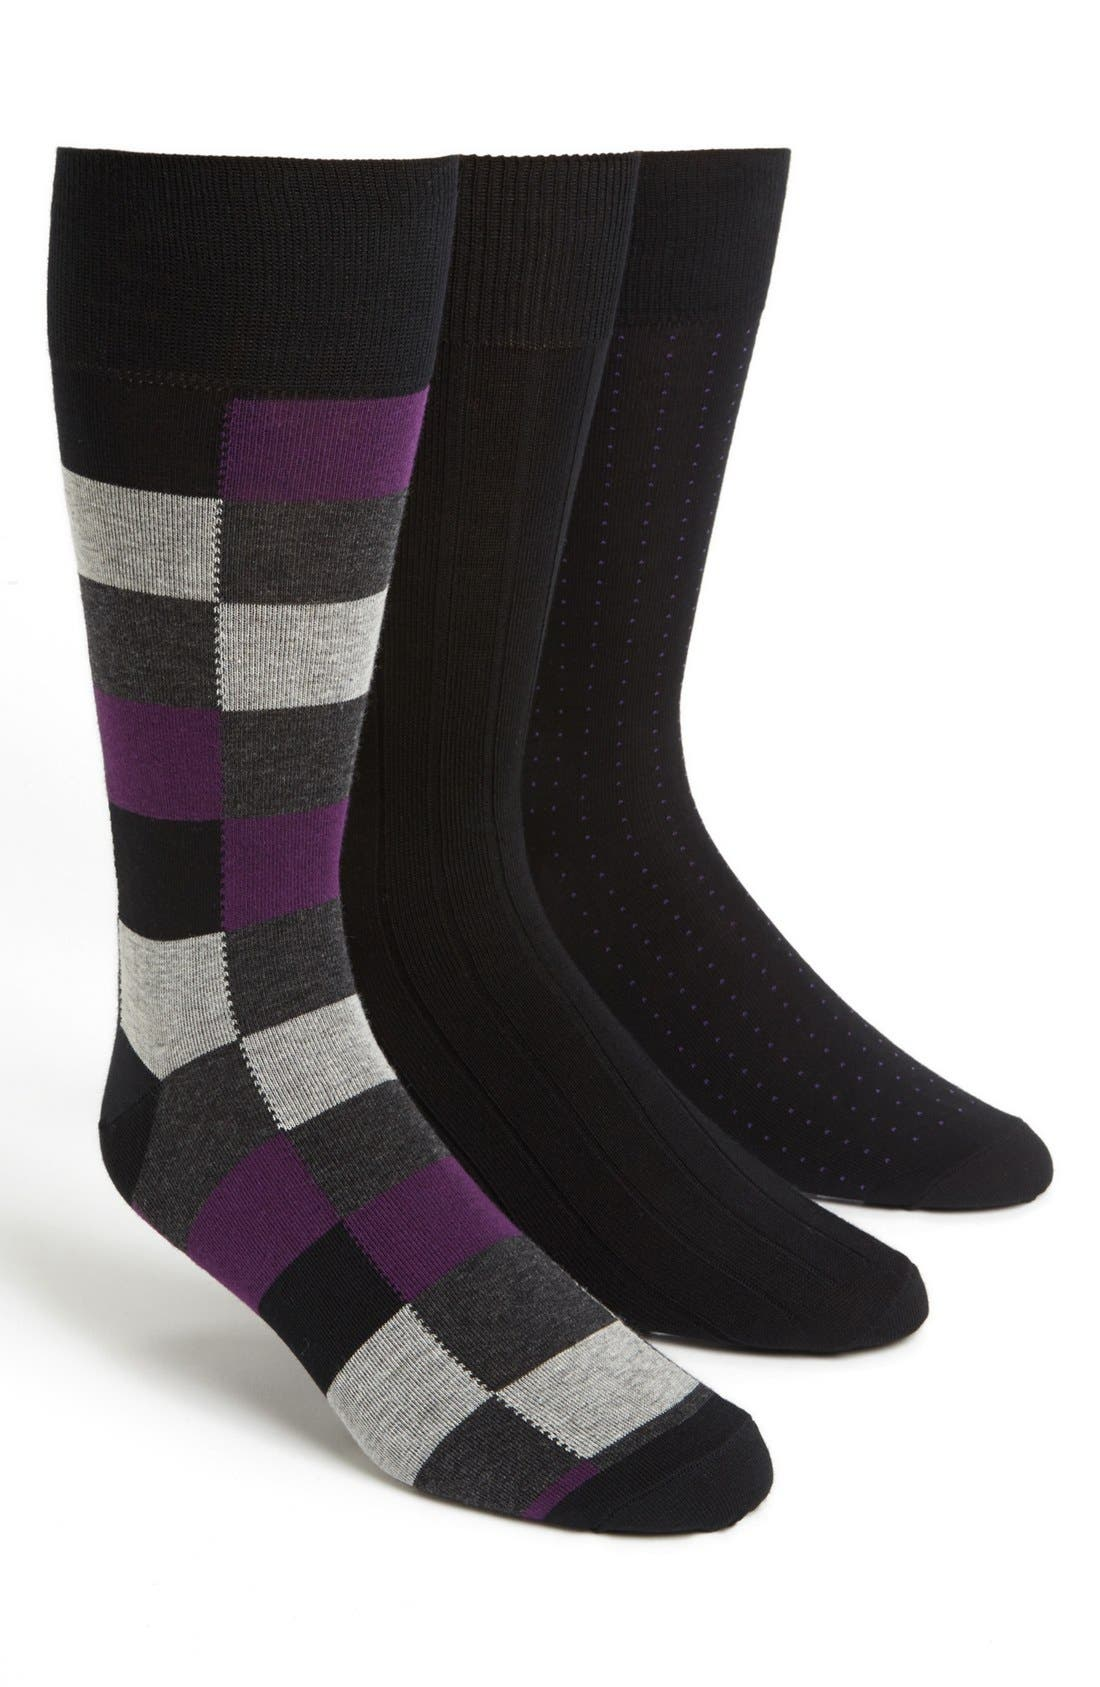 Main Image - Cole Haan Pima Cotton Blend Socks (Assorted 3-Pack)